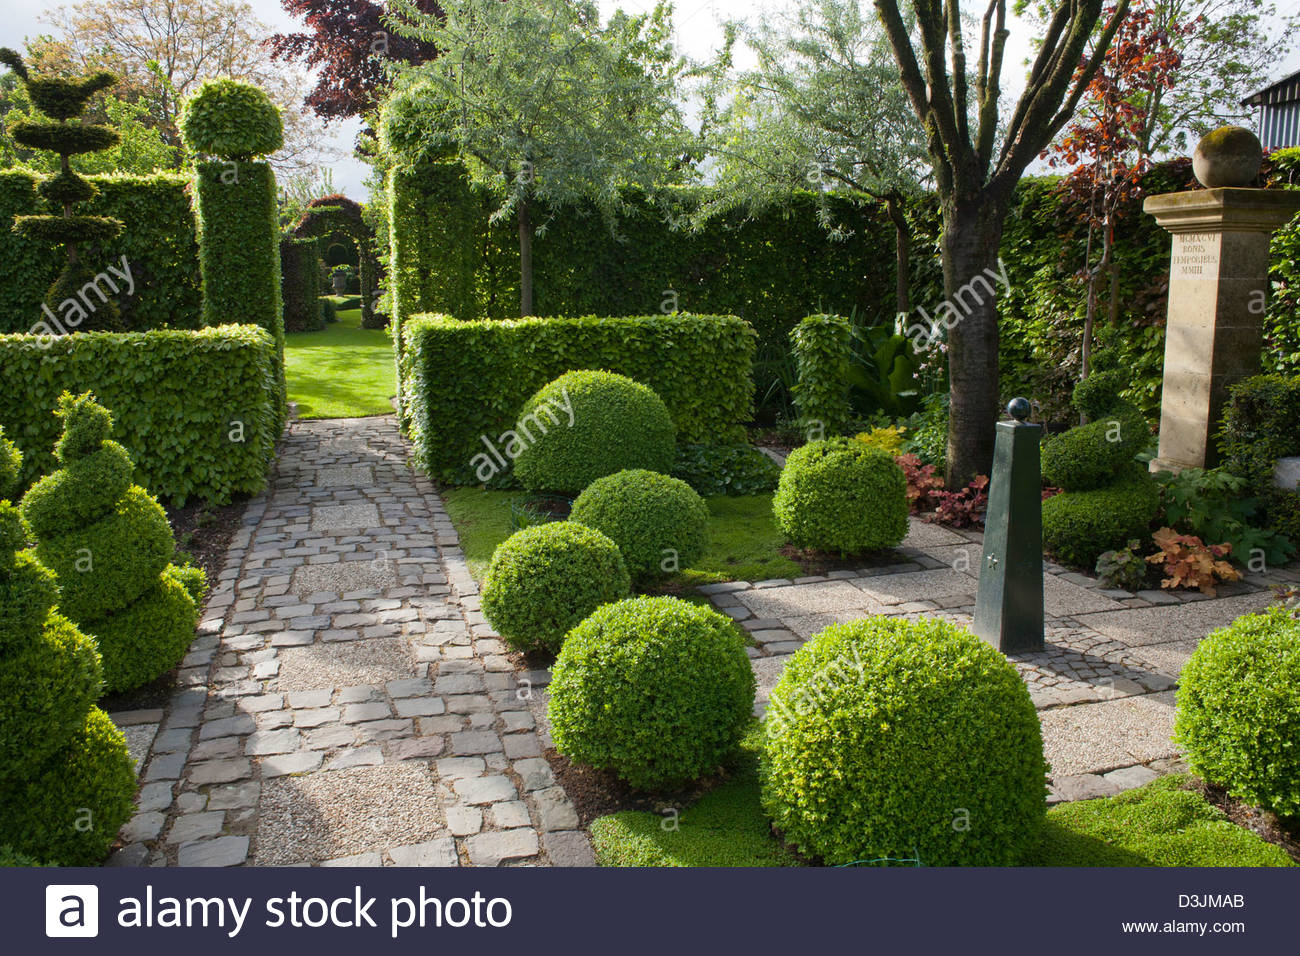 Formal Country Garden With Topiary.   Stock Image